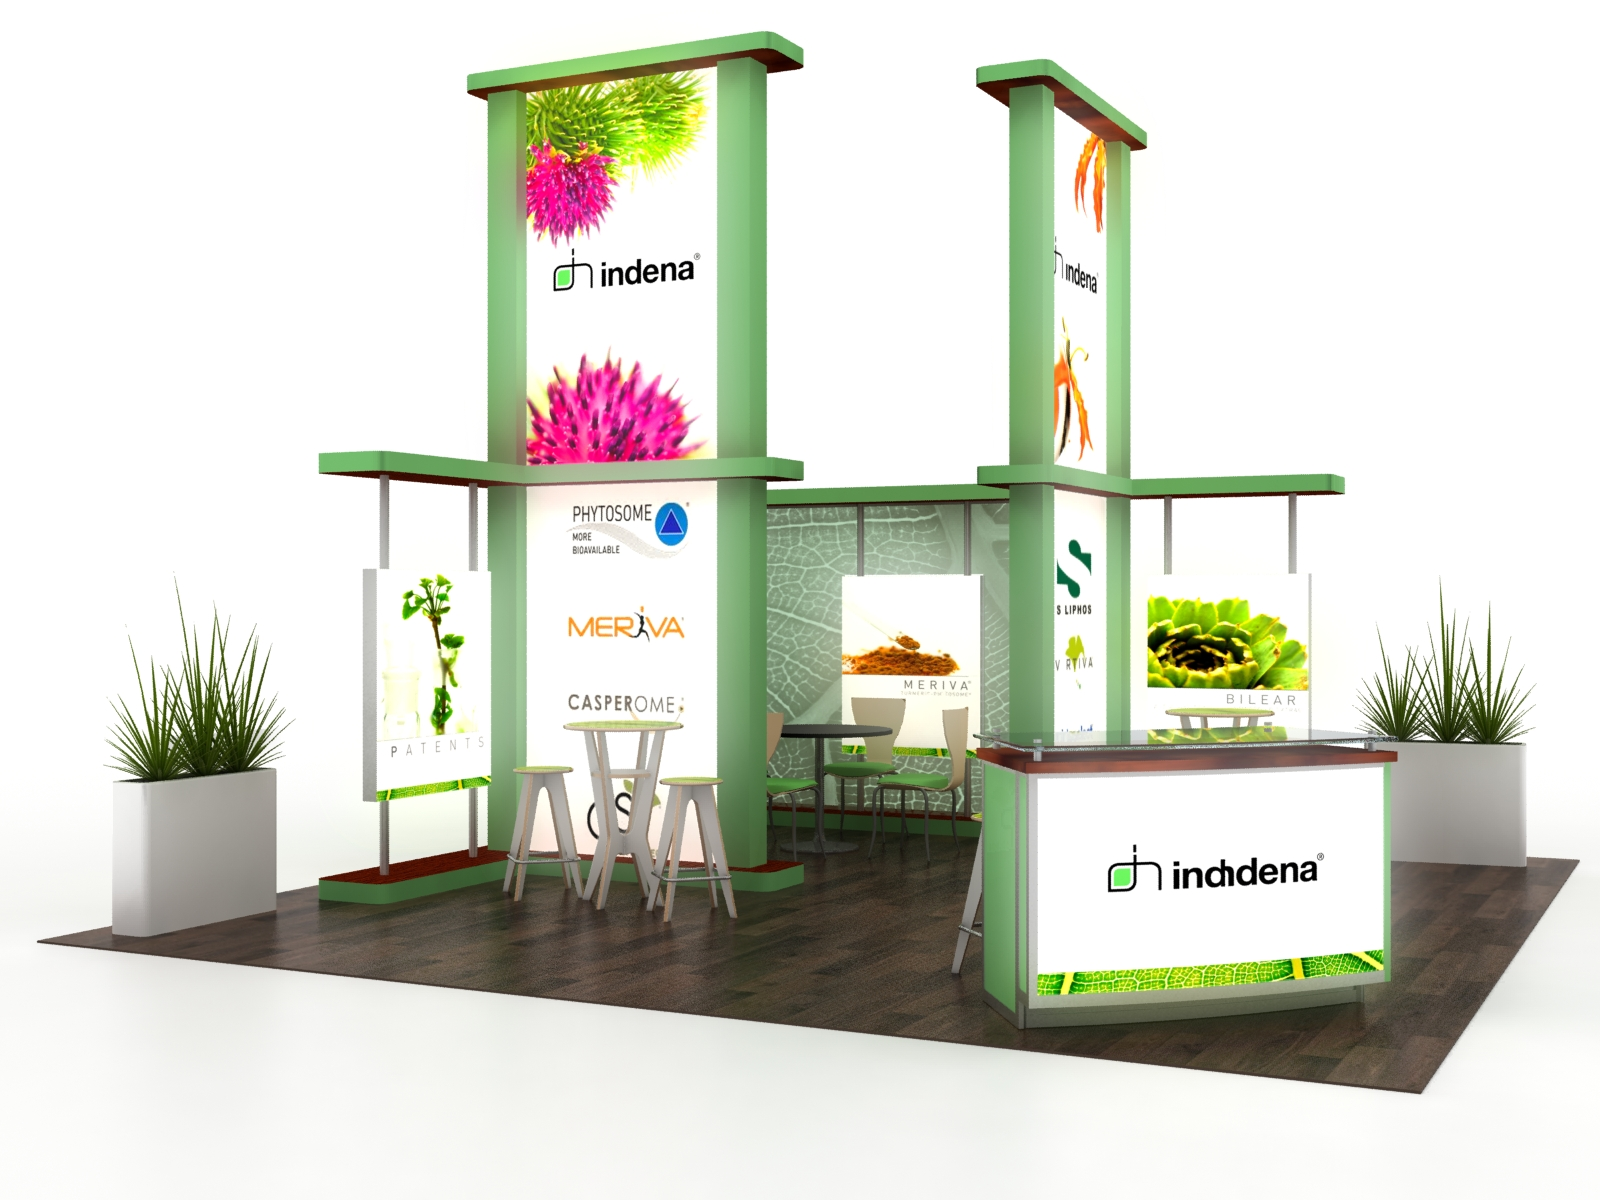 Exhibition Booth Accessories : Exhibit design search vk island